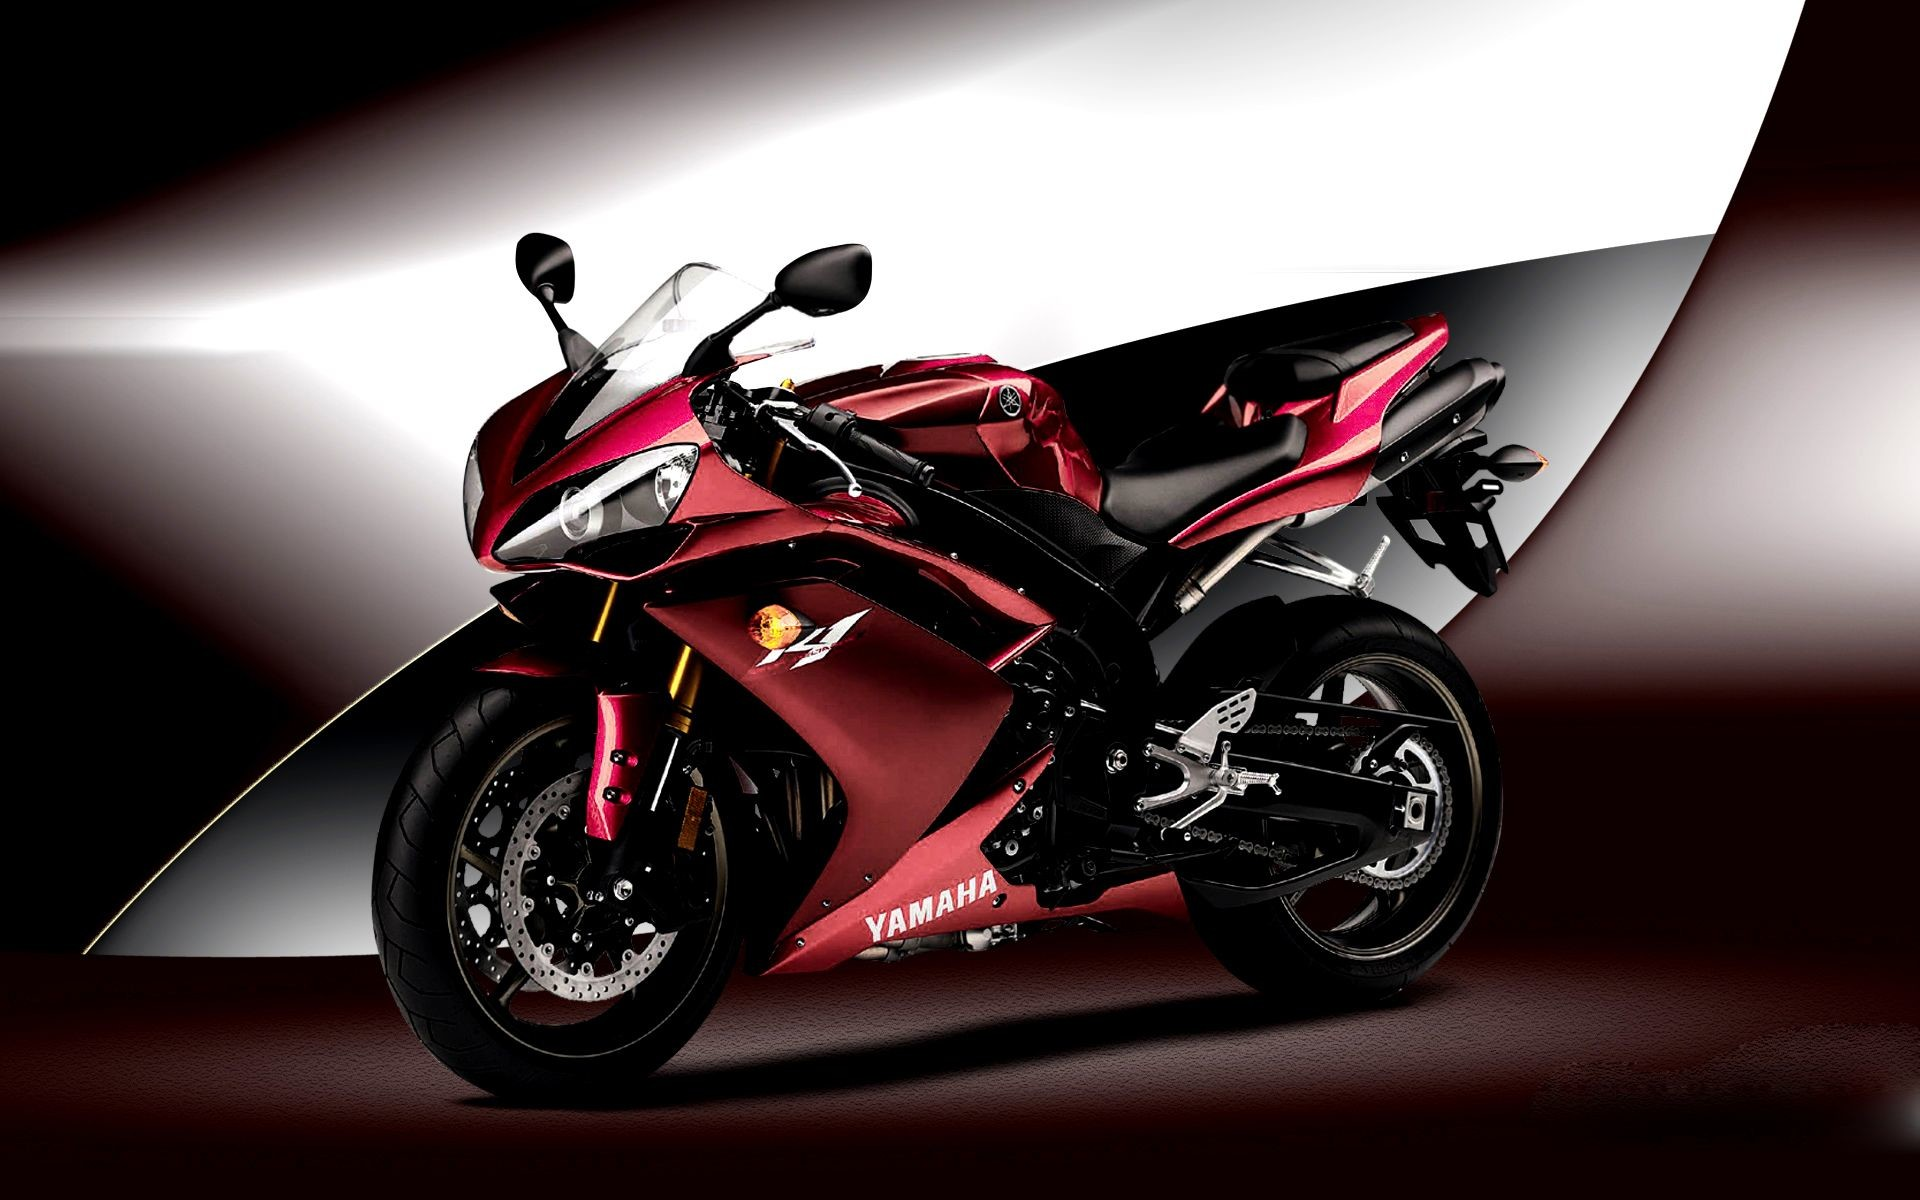 Res: 1920x1200, Yamaha YZF-R1 Wallpapers 19 - 1920 X 1200